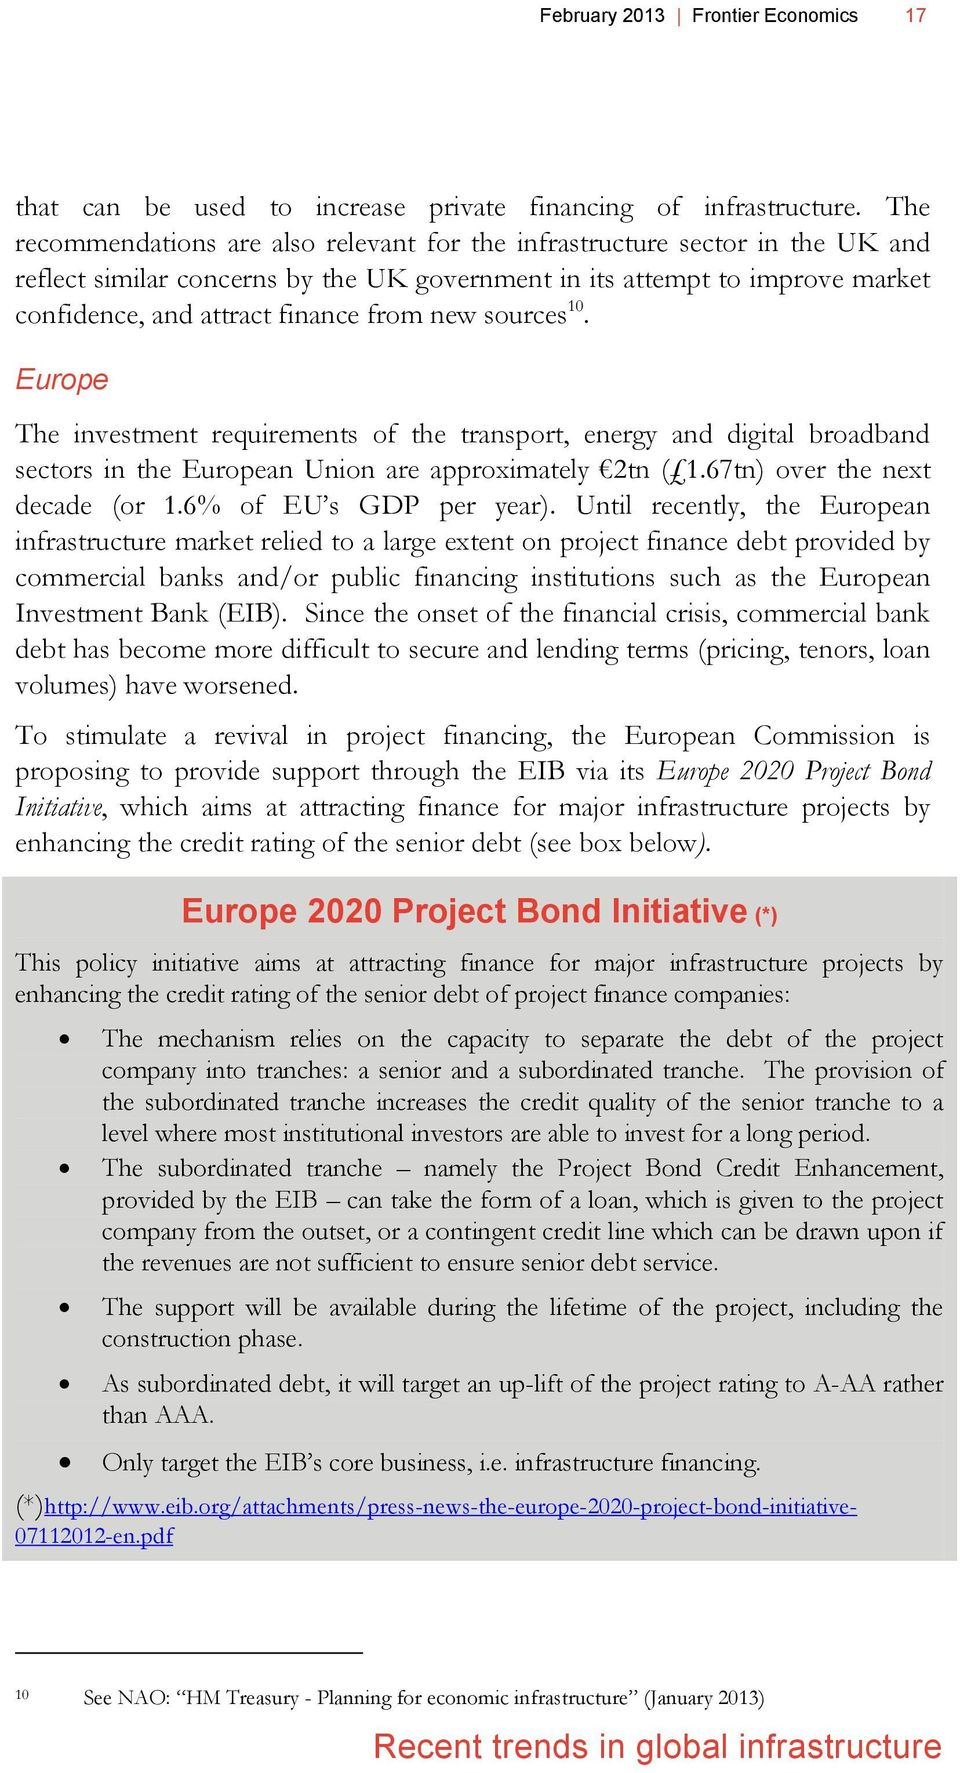 new sources 10. Europe The investment requirements of the transport, energy and digital broadband sectors in the European Union are approximately 2tn ( 1.67tn) over the next decade (or 1.